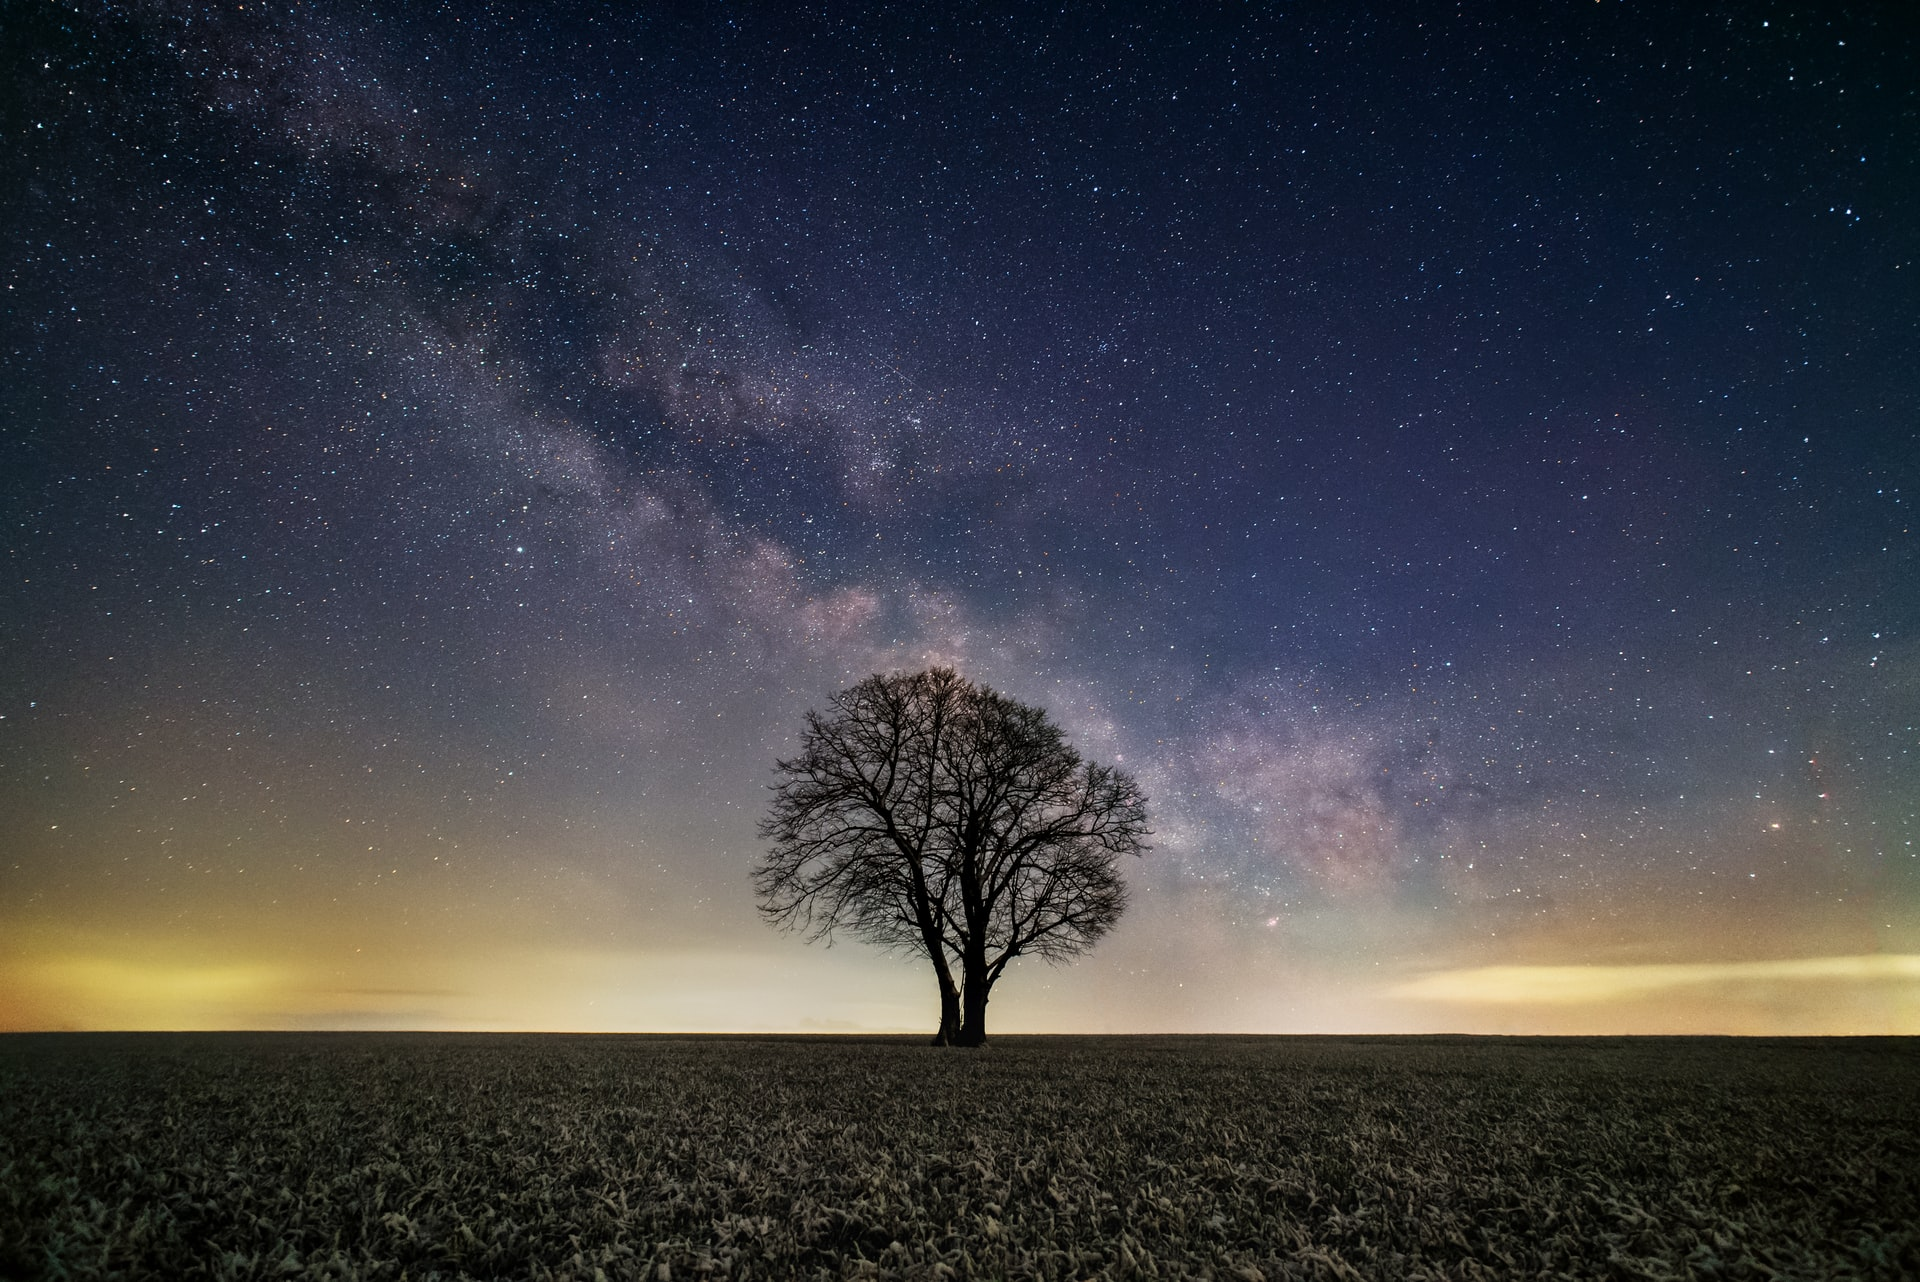 A picture of a tree at nighttime